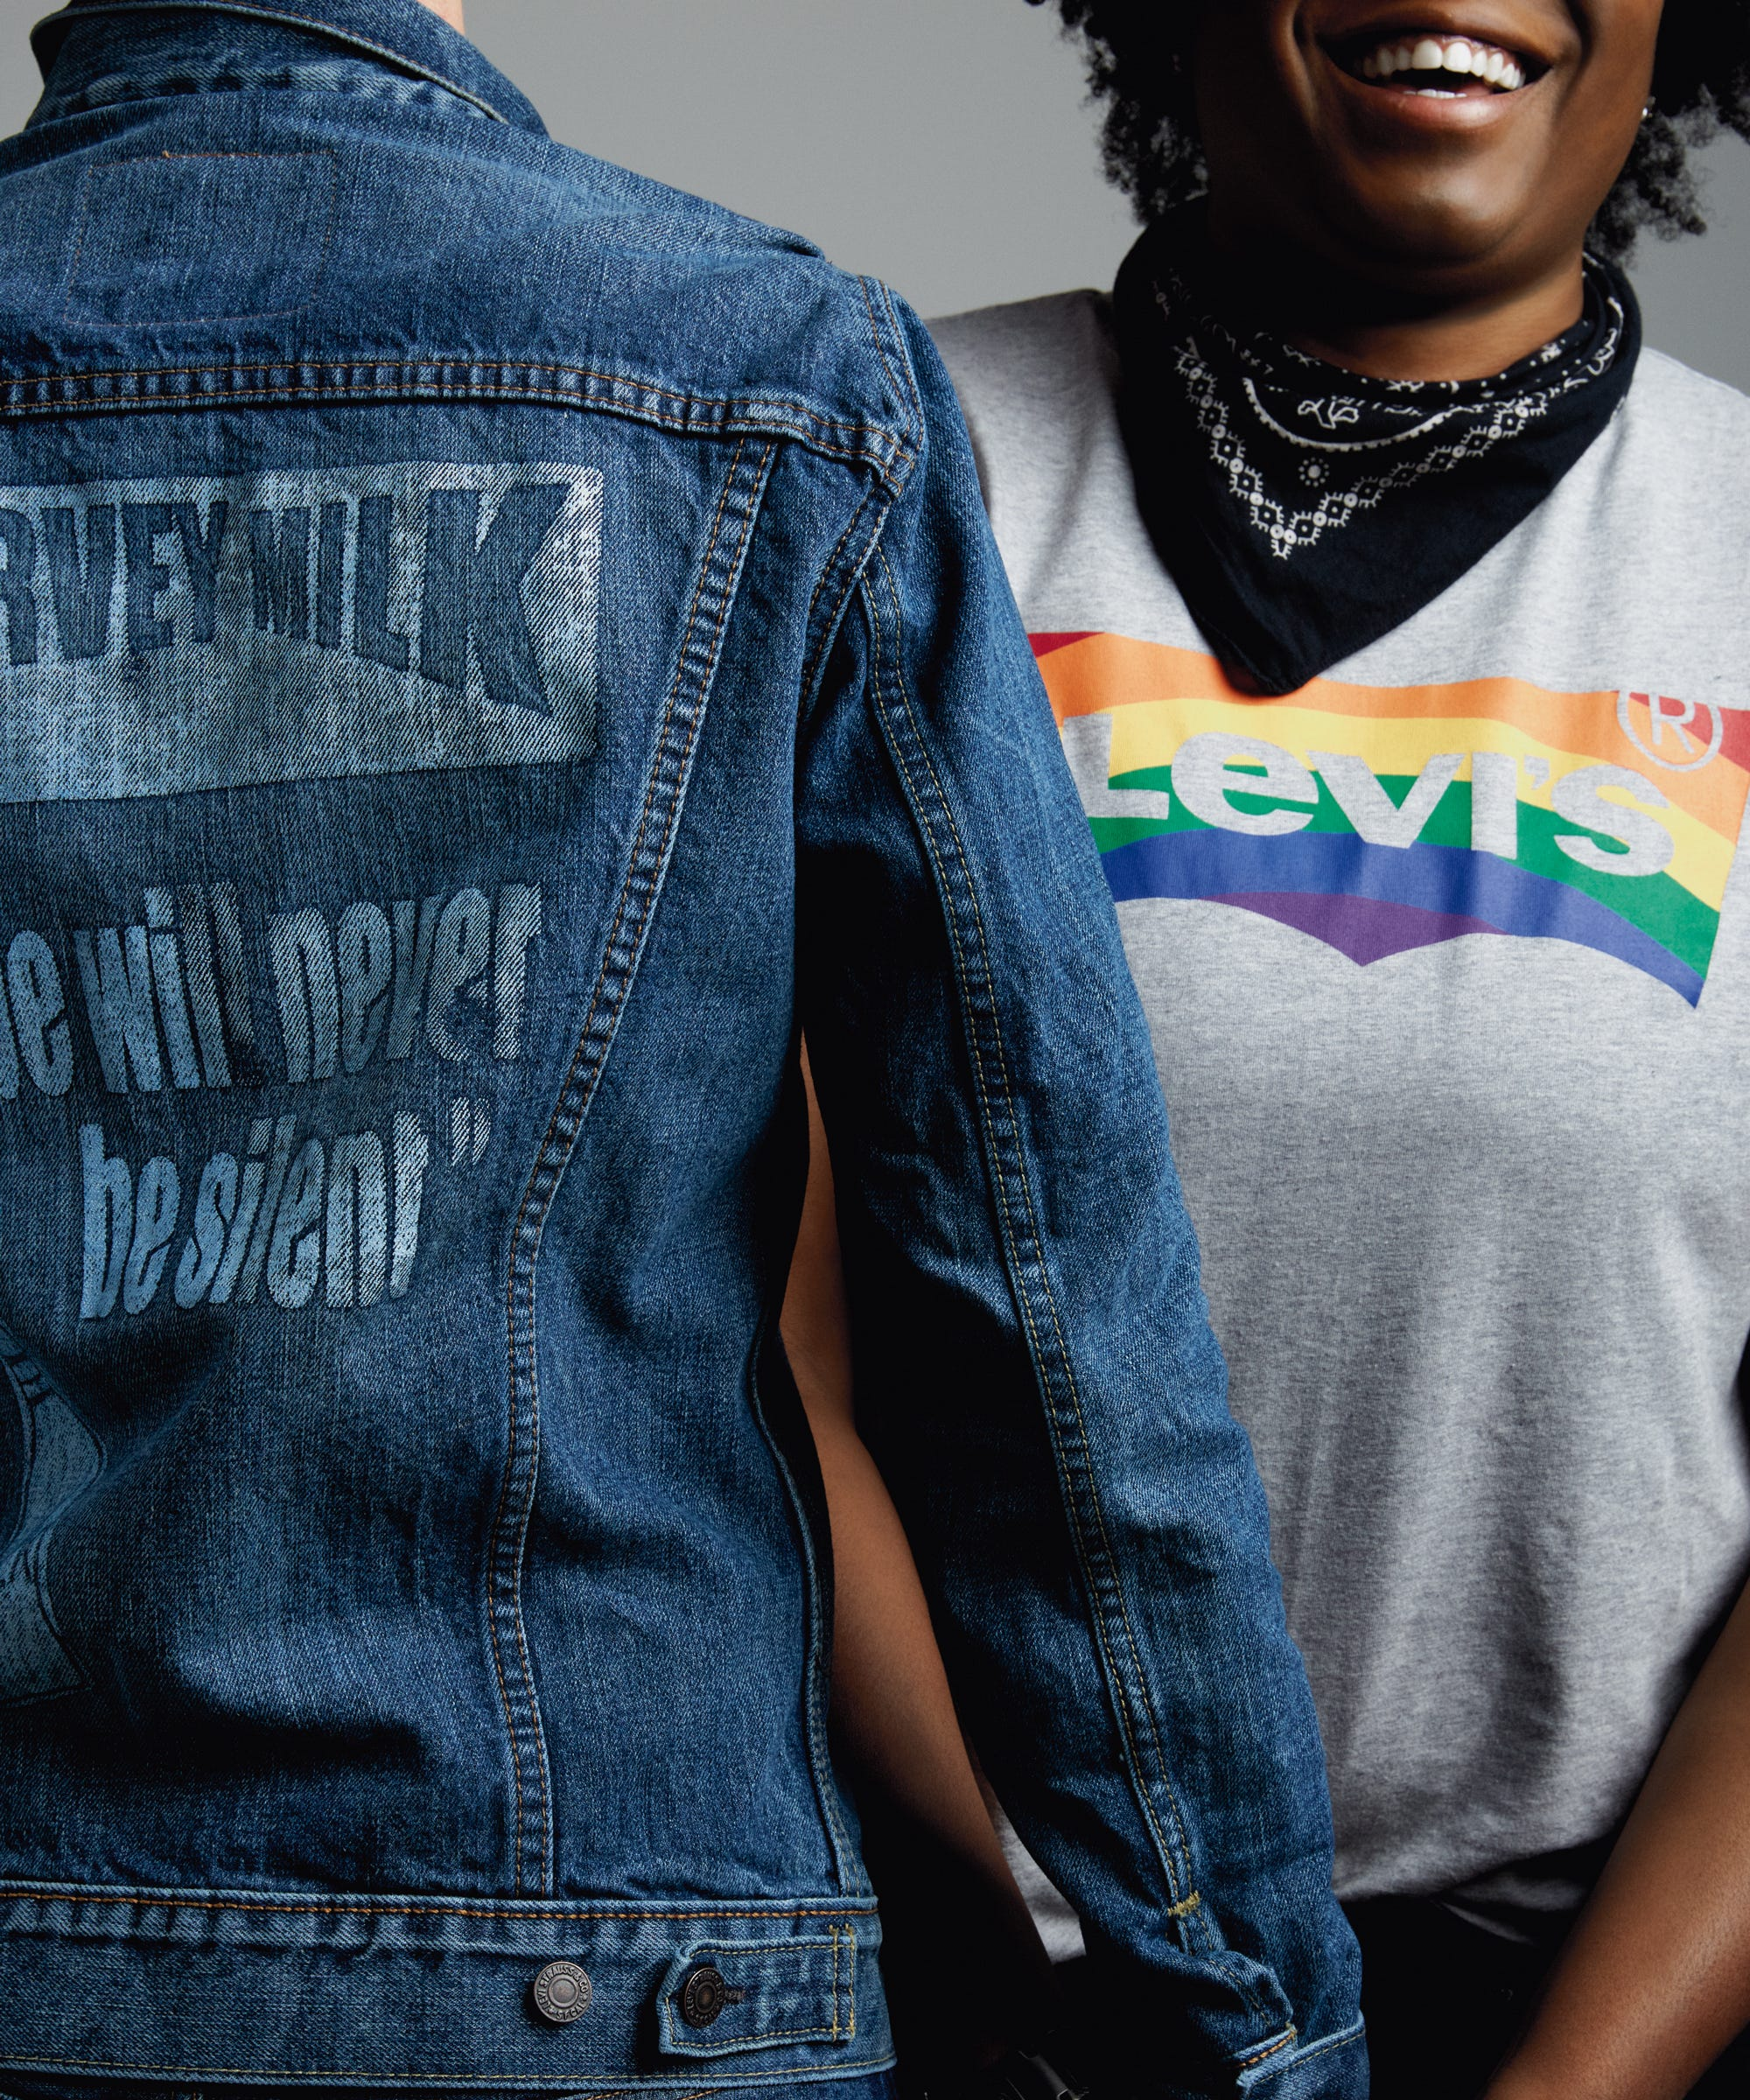 a034bee44040c6 Levis Harvey Milk LGBT Pride Denim Collection 2016